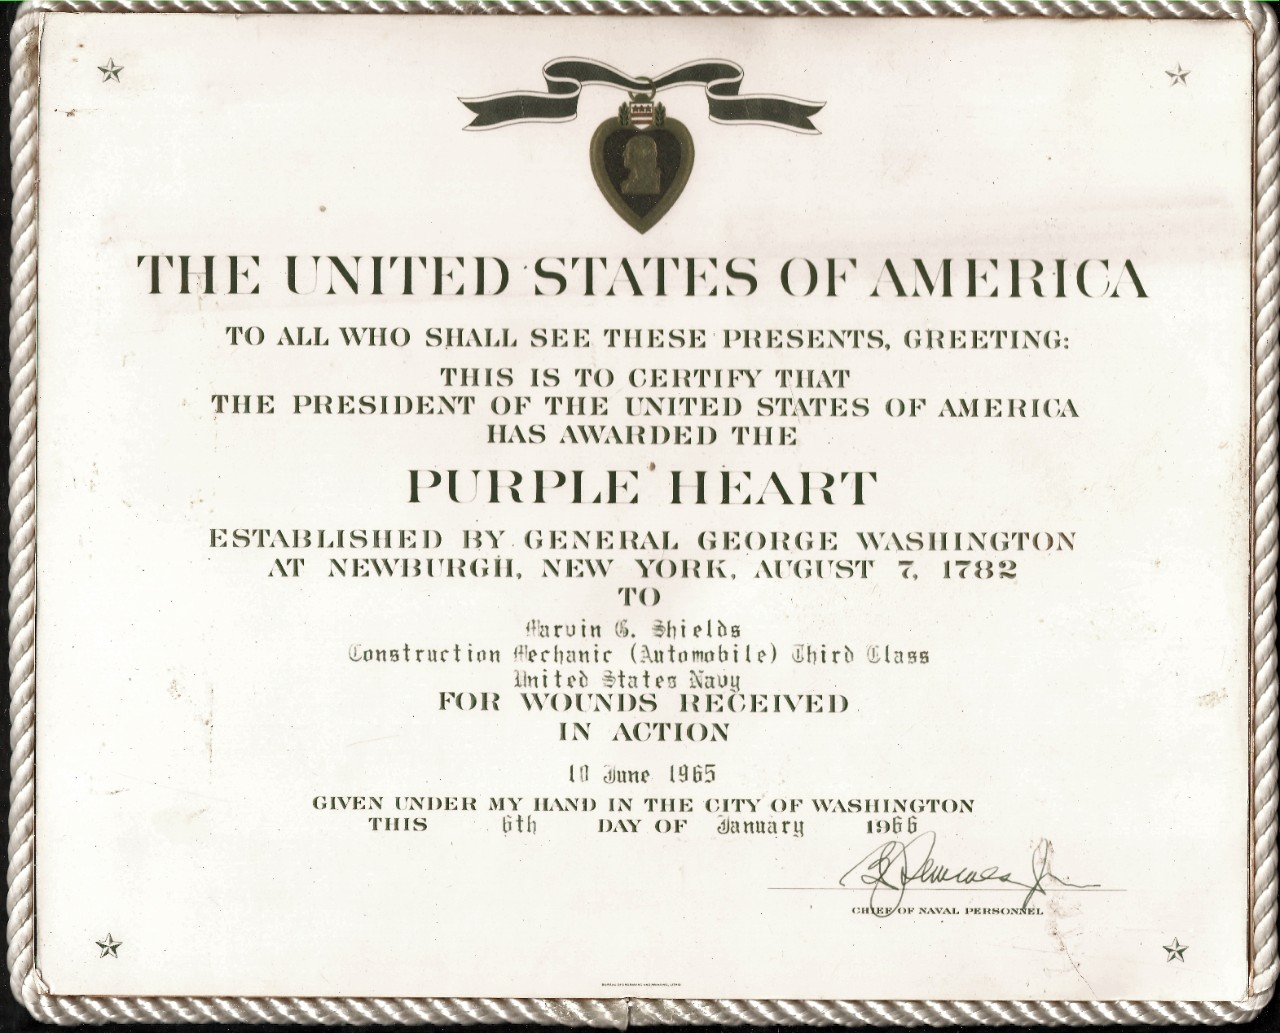 <p>Purple Heart Award for Marvin Shields</p>